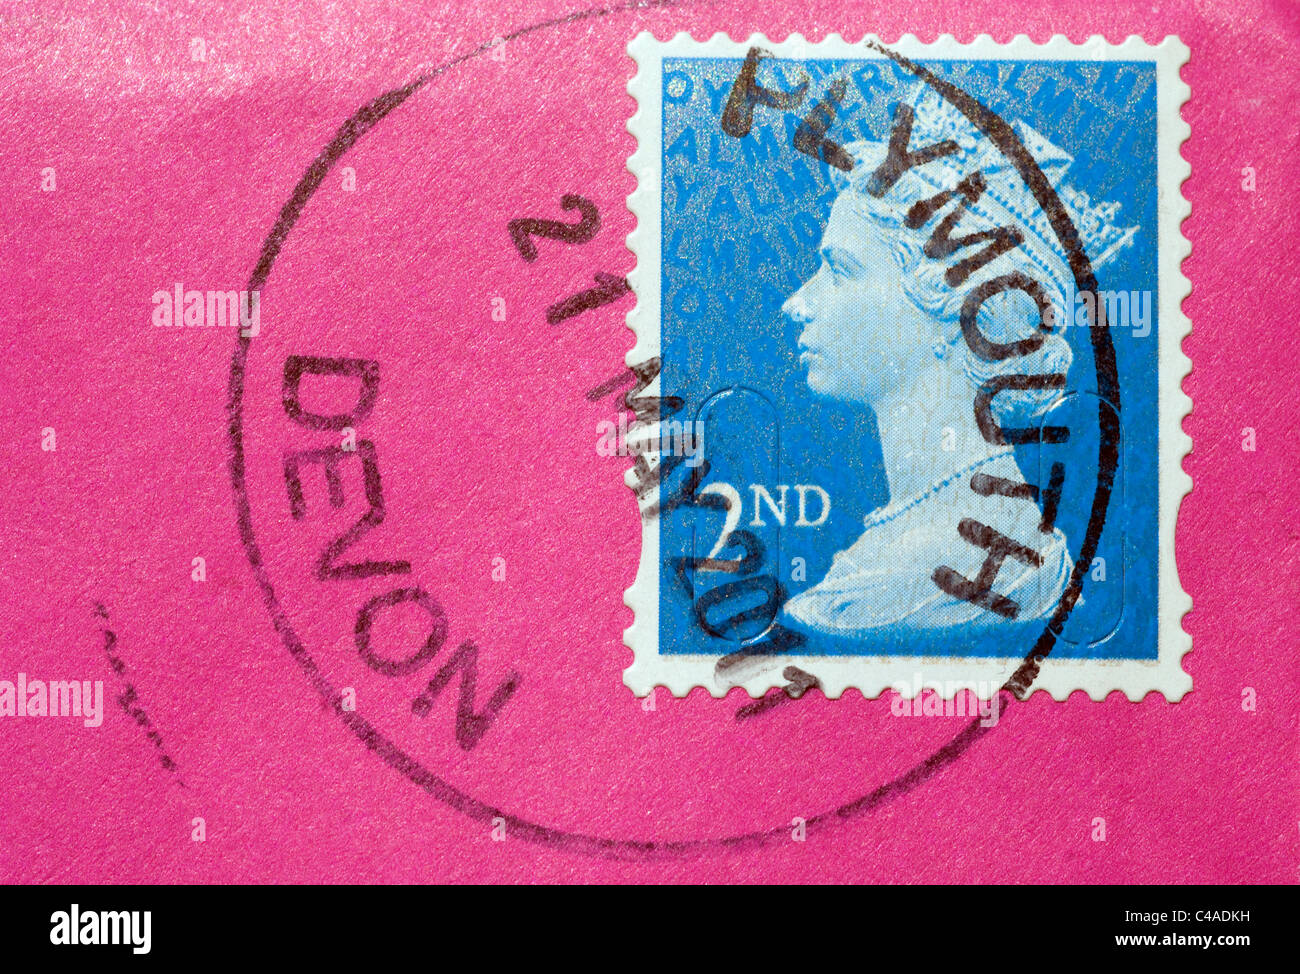 A Second Class (2nd) light blue Royal Mail Post Office Postage Stamp with HRH Queen Elizabeth II head on pink envelope - Stock Image